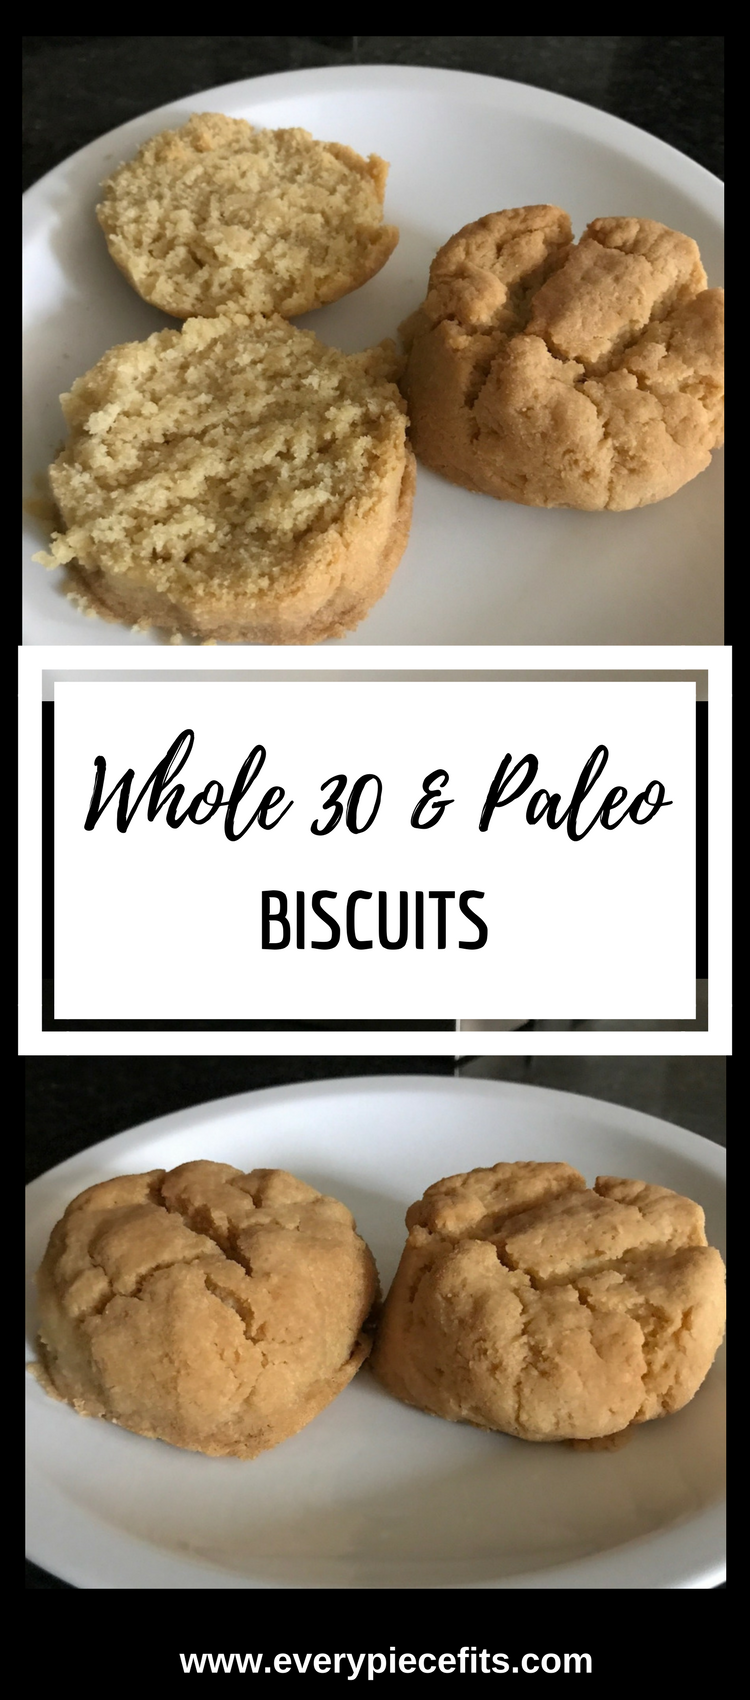 Whole 30 Biscuits.png